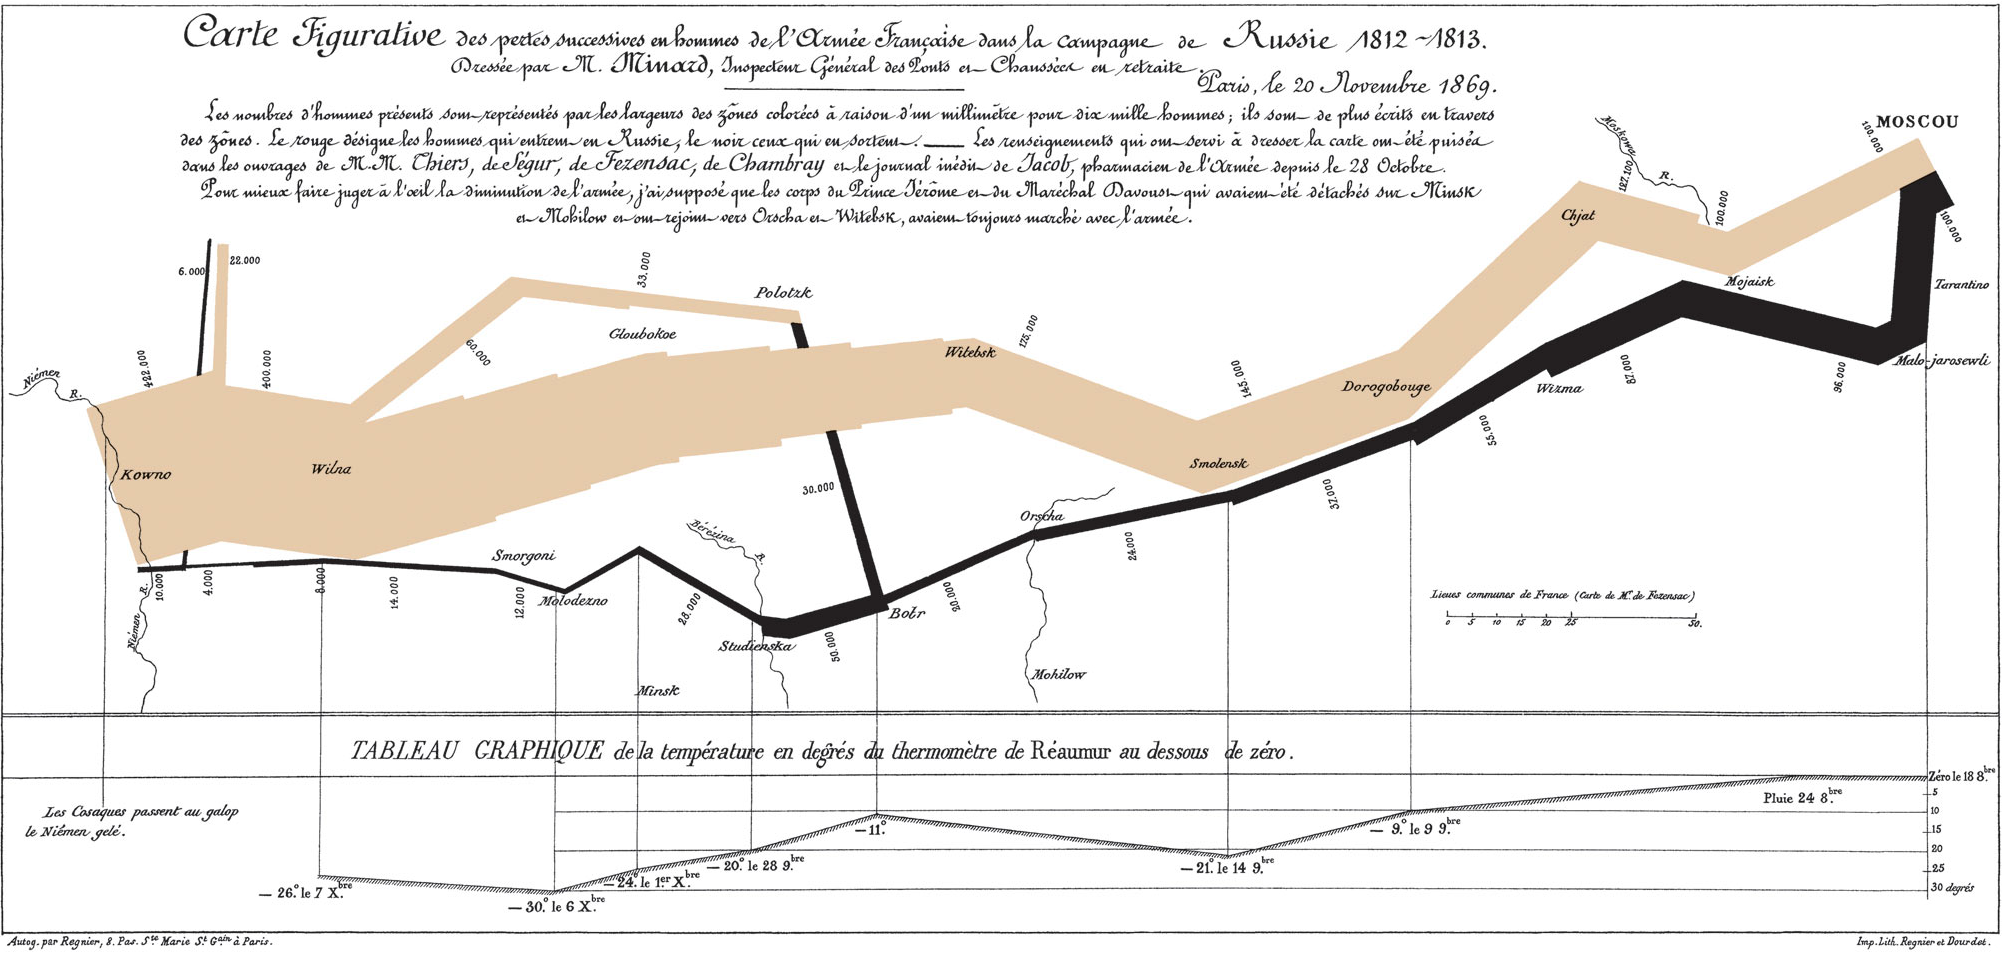 Minard's map of Napoleon's Russia campaign. The path of the army gets narrower as casualties increase.